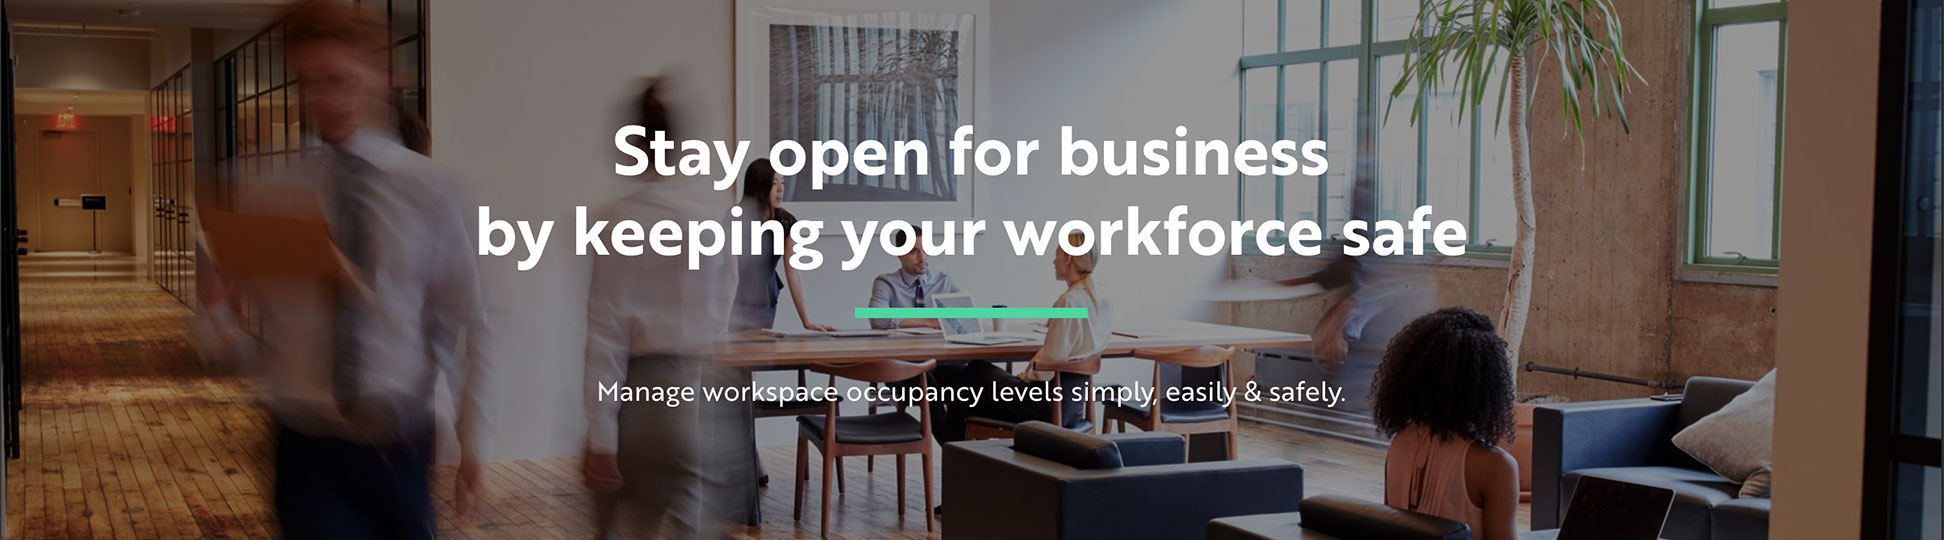 Go to Work – Launched to promote safety at work as lockdown eases